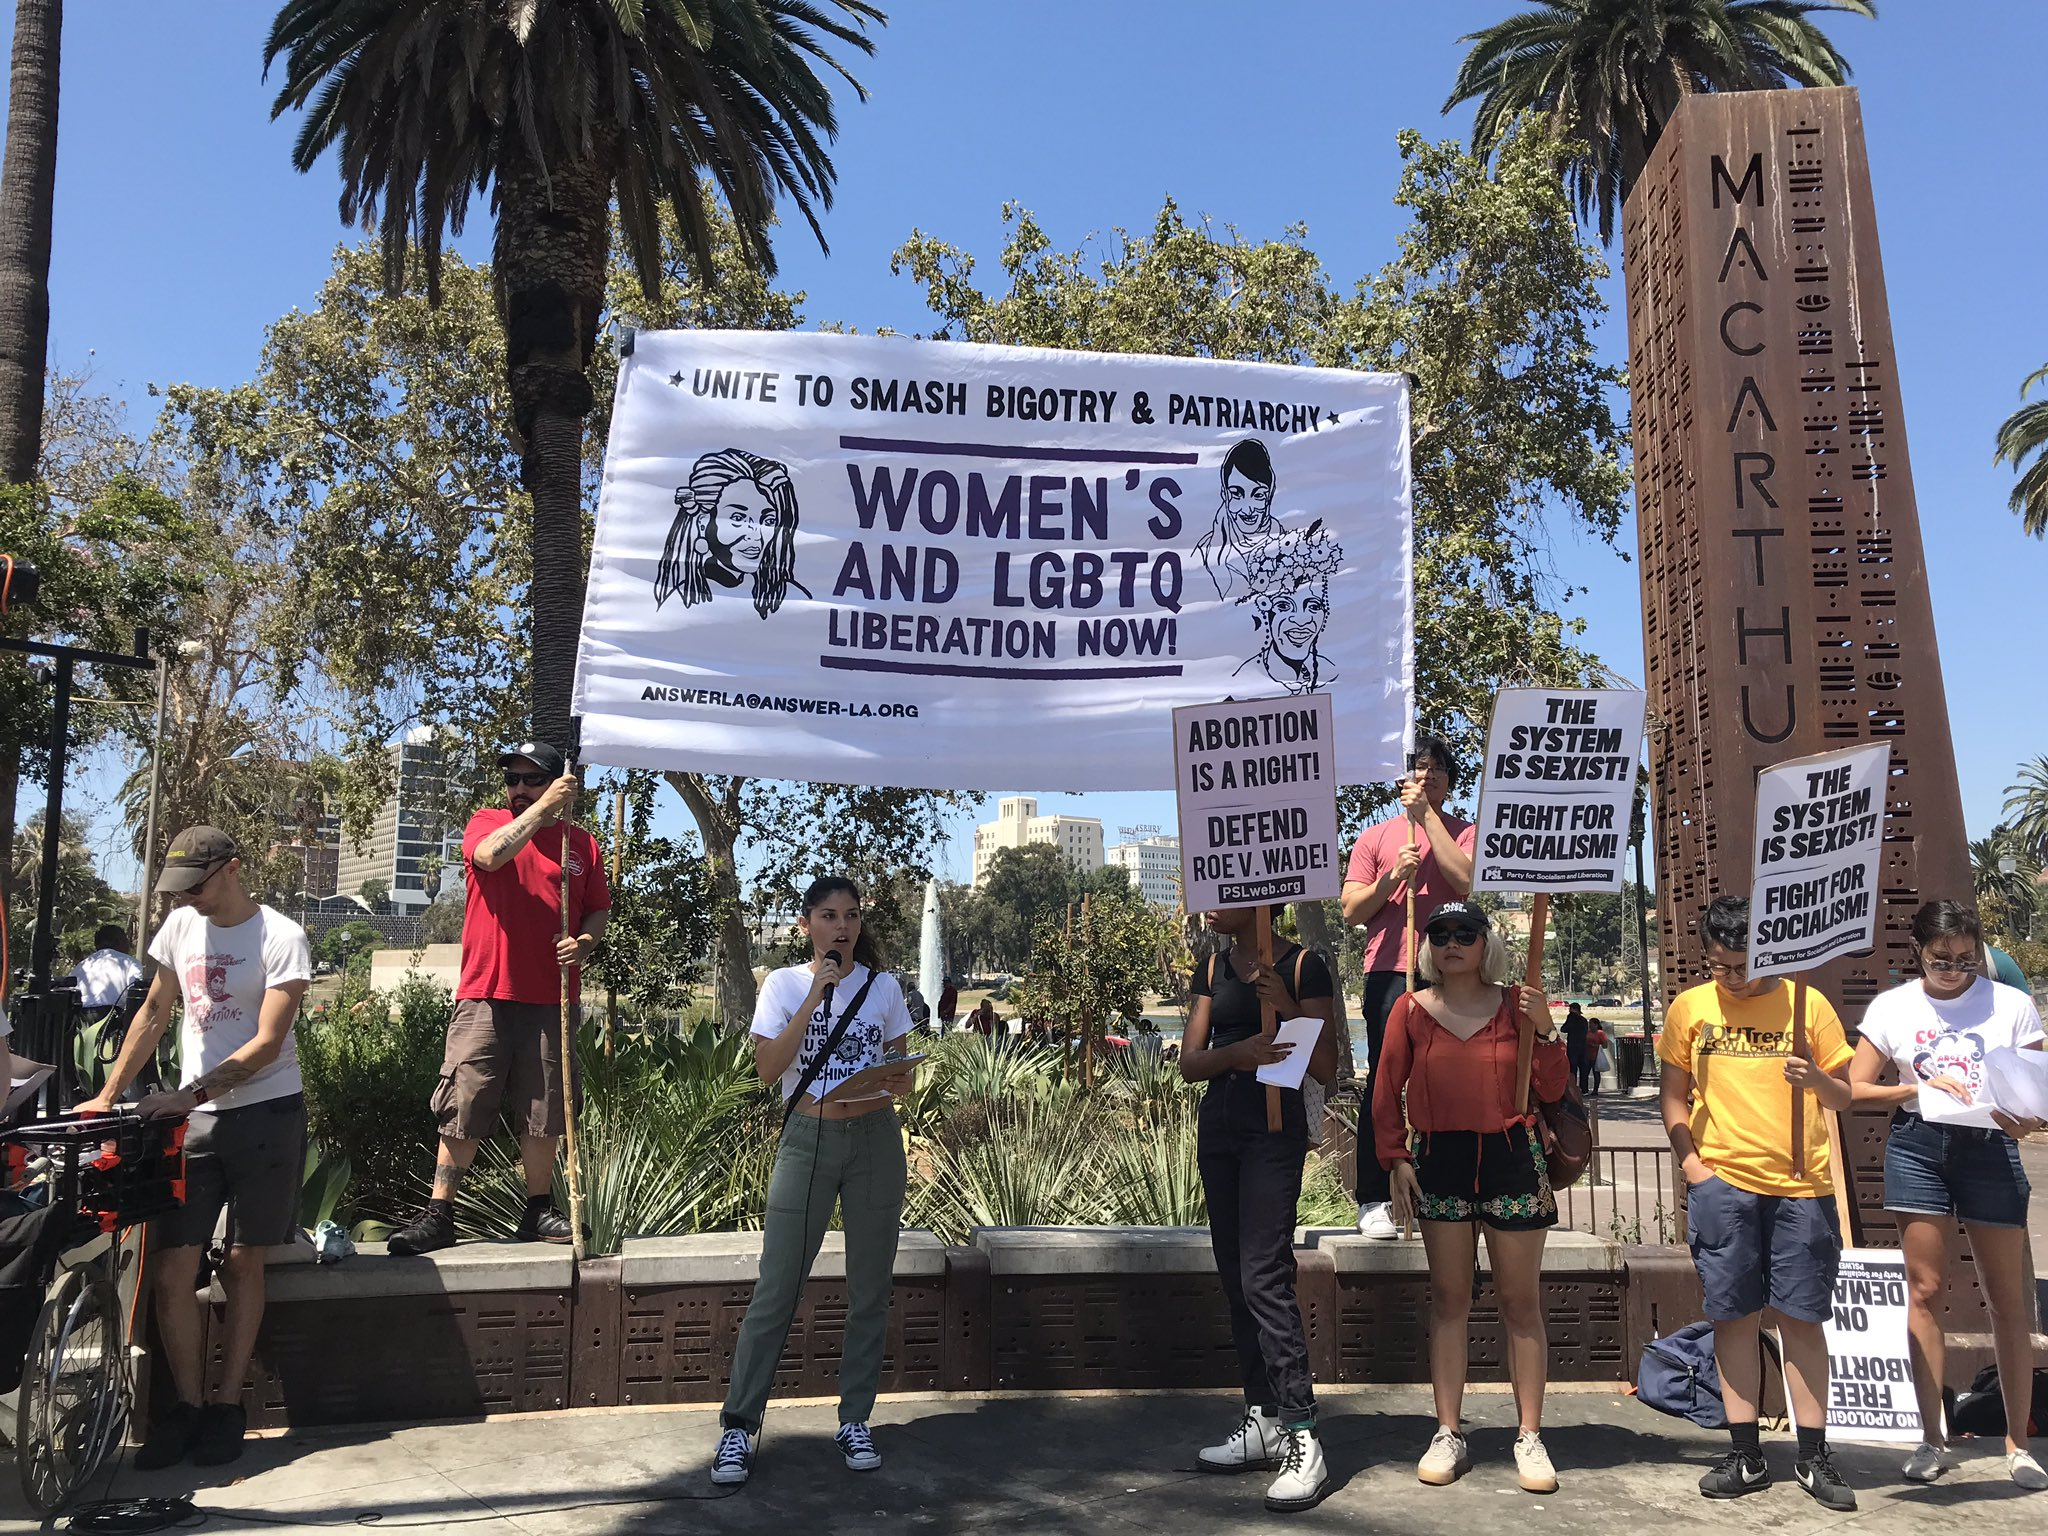 Women's Equality Day speak-out and march in Los Angeles